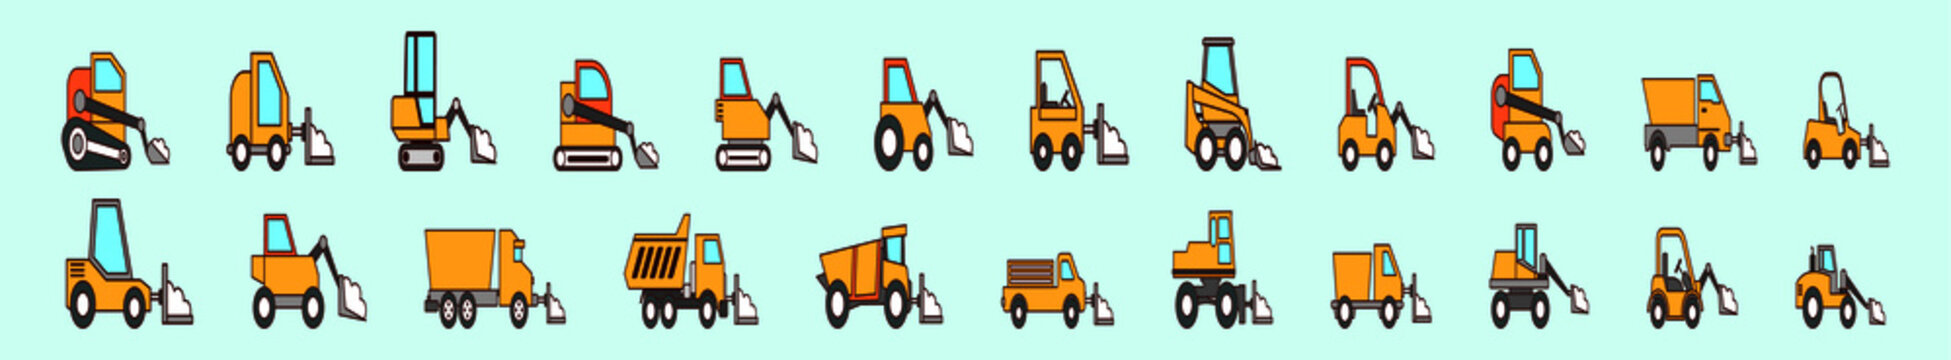 set of snow plow cartoon icon design template with various models. vector illustration isolated on blue background